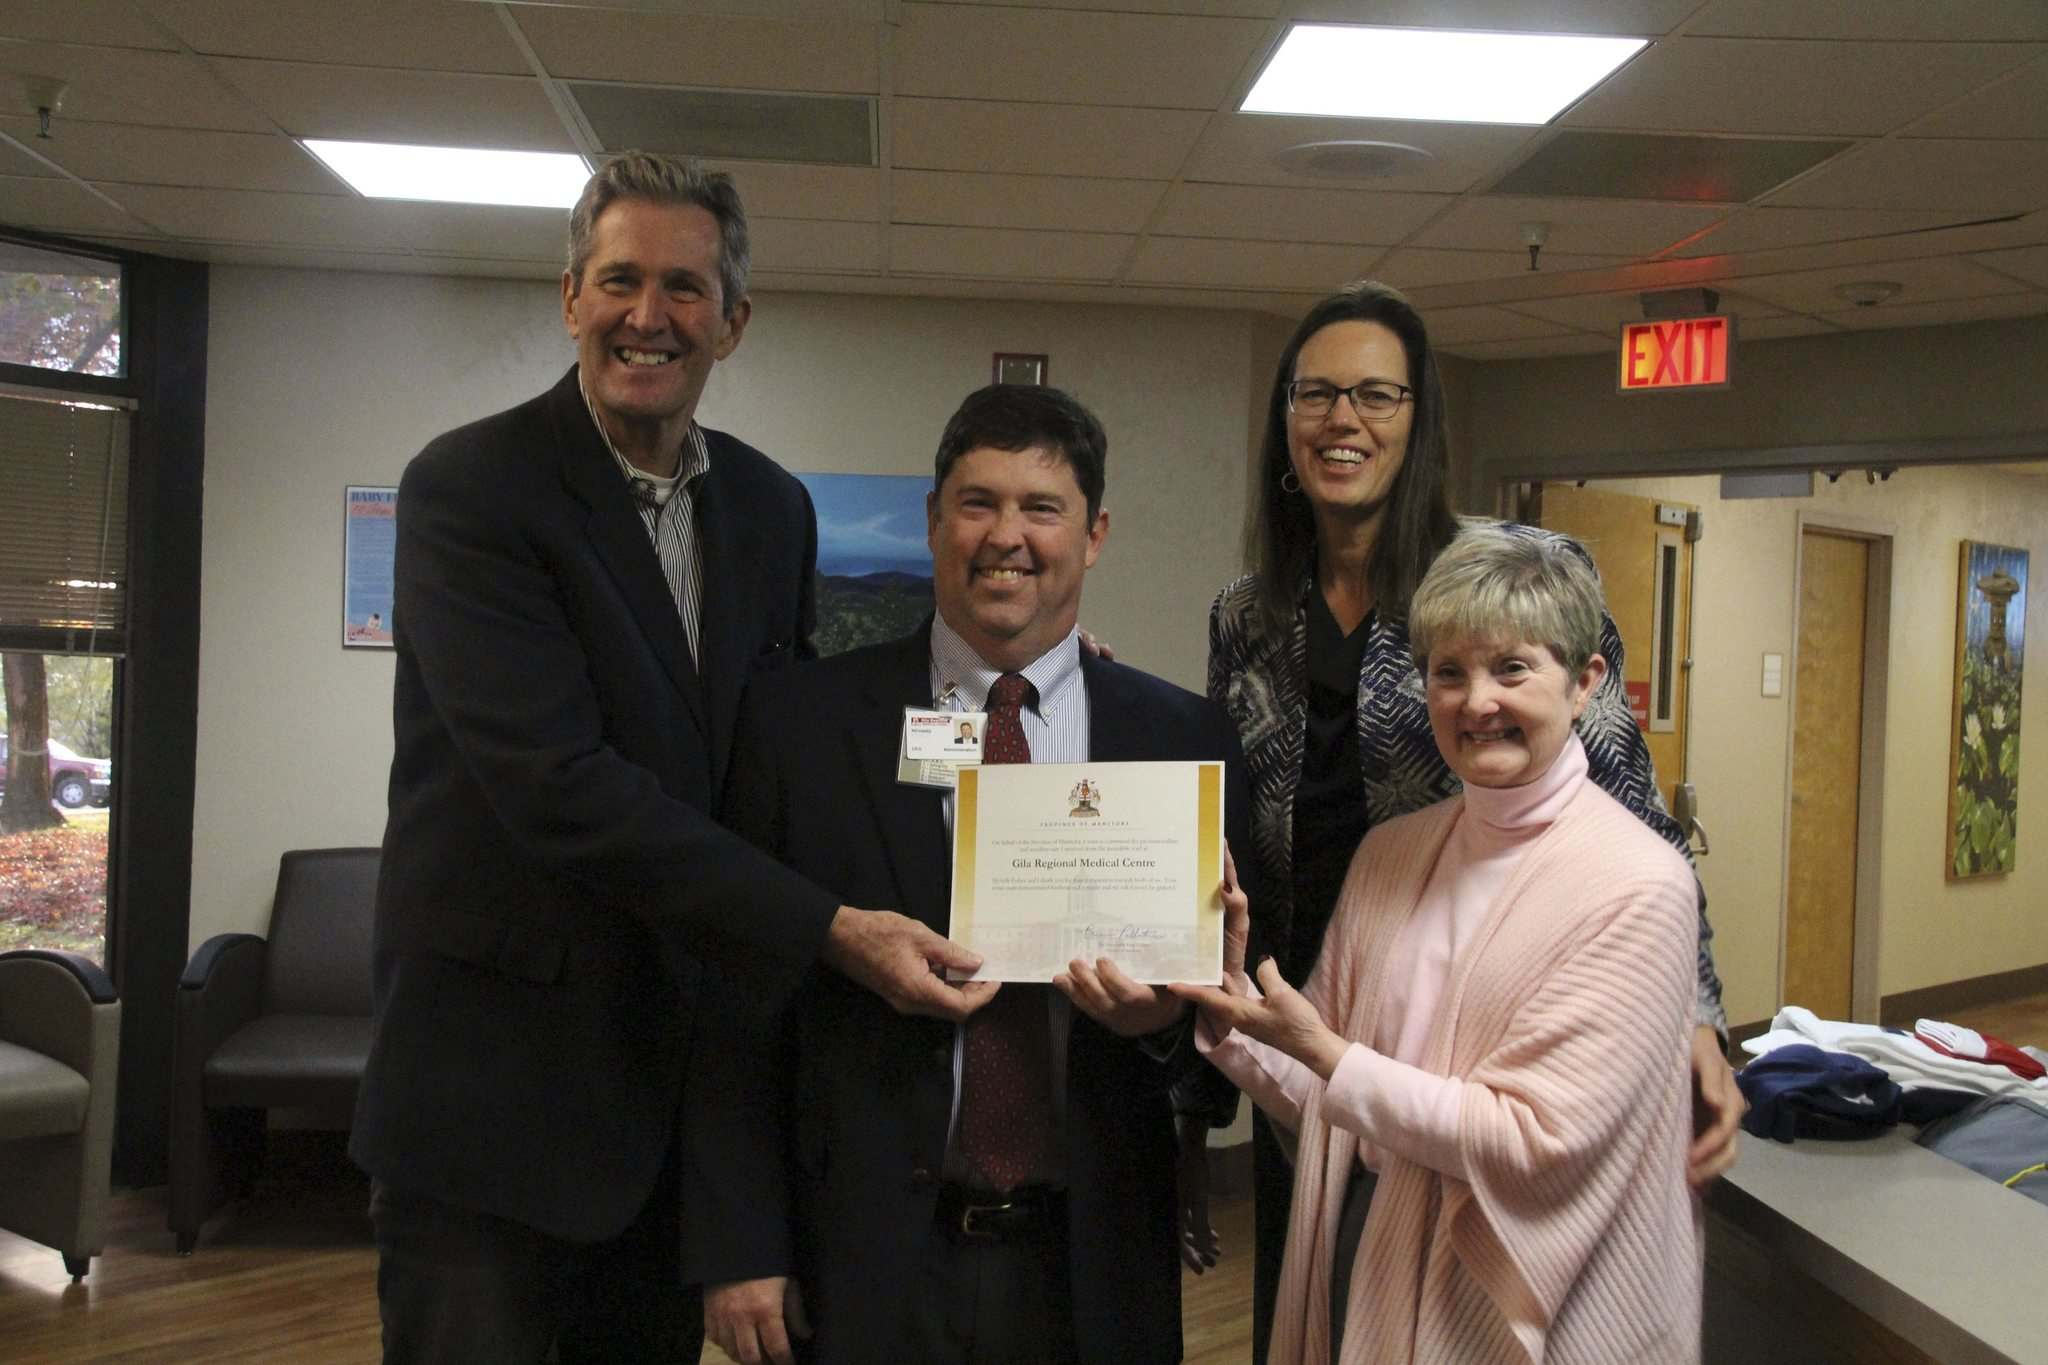 <p>Premier Brian Pallister and his wife Esther present a certificate of appreciation for the care he received at Gila Regional Medical Center in Silver City, New Mexico in 2017. GRMC Chief Financial Officer Richard Stokes and Chief Executive Officer Taffy Arias accept the certificate.</p>